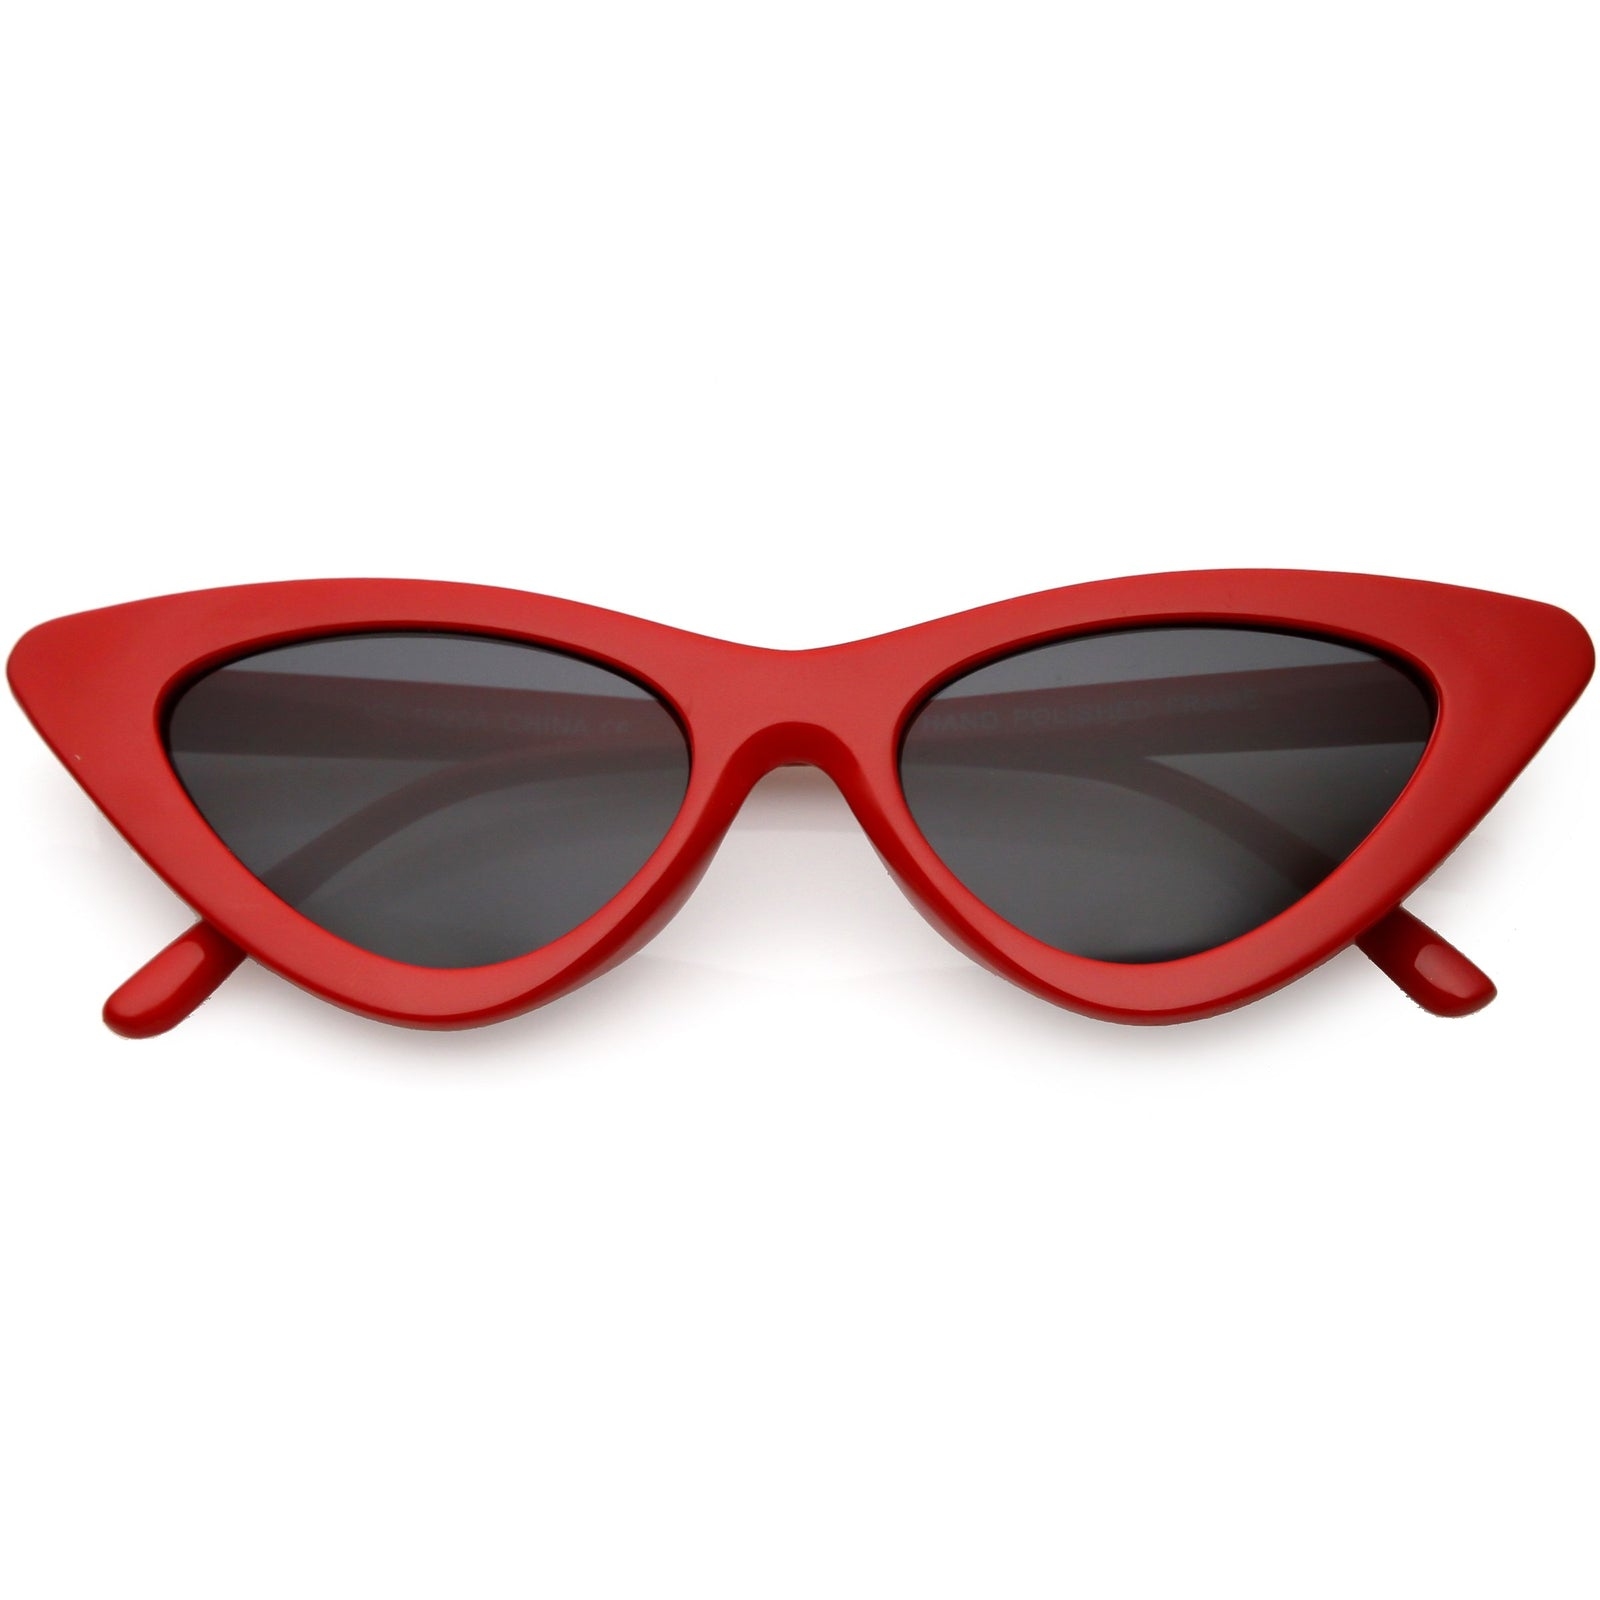 0dc5e71bd8a8 Retro Hipster Indie Sunglasses Tagged